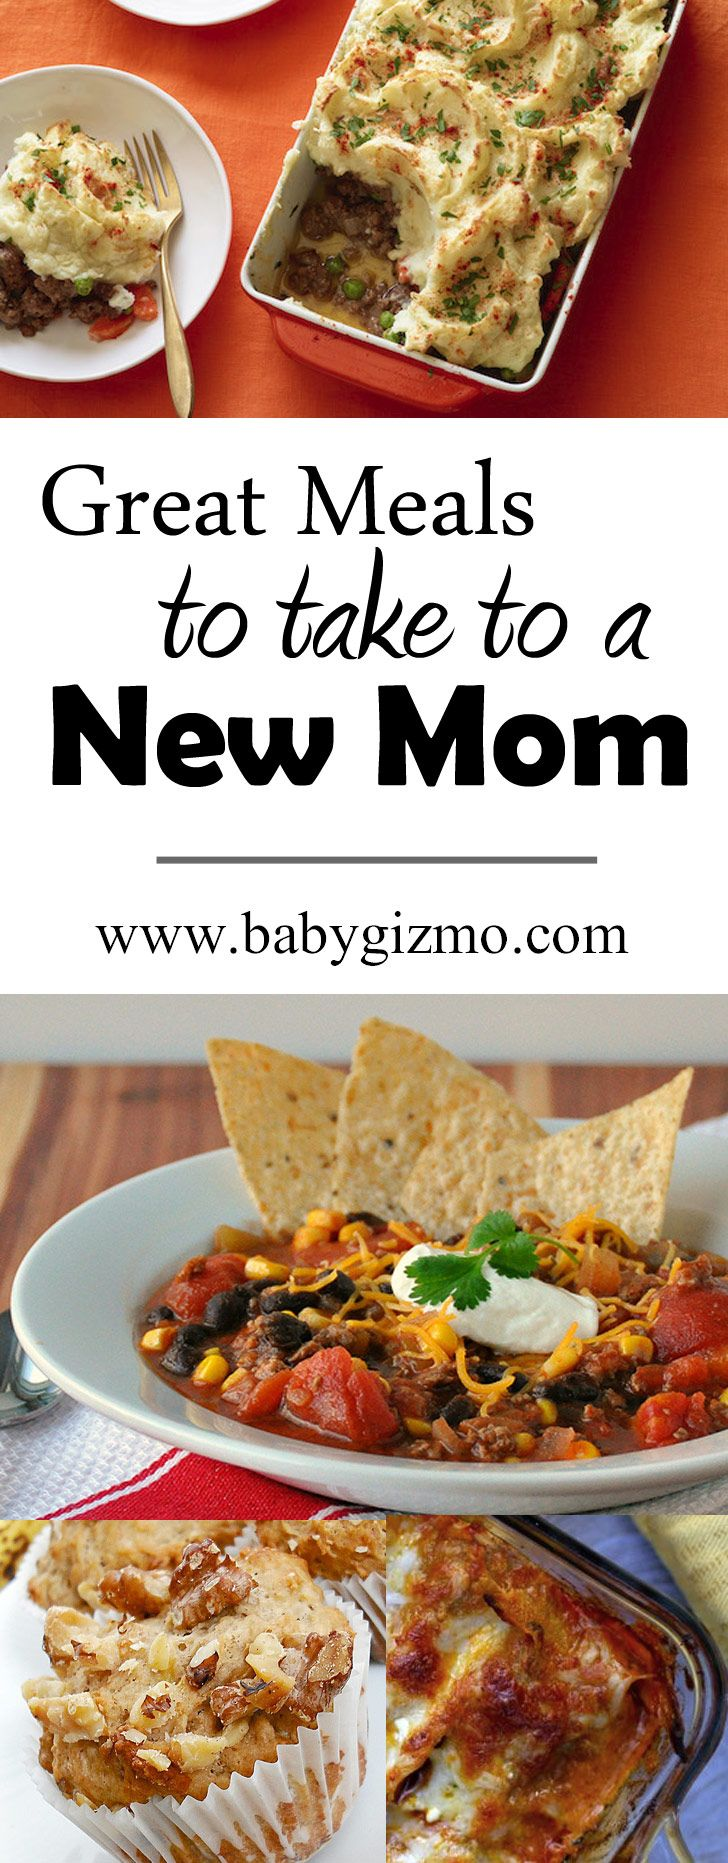 Great Meals to Take a New Mom! No matter what you bring - BRING. HER. FOOD.